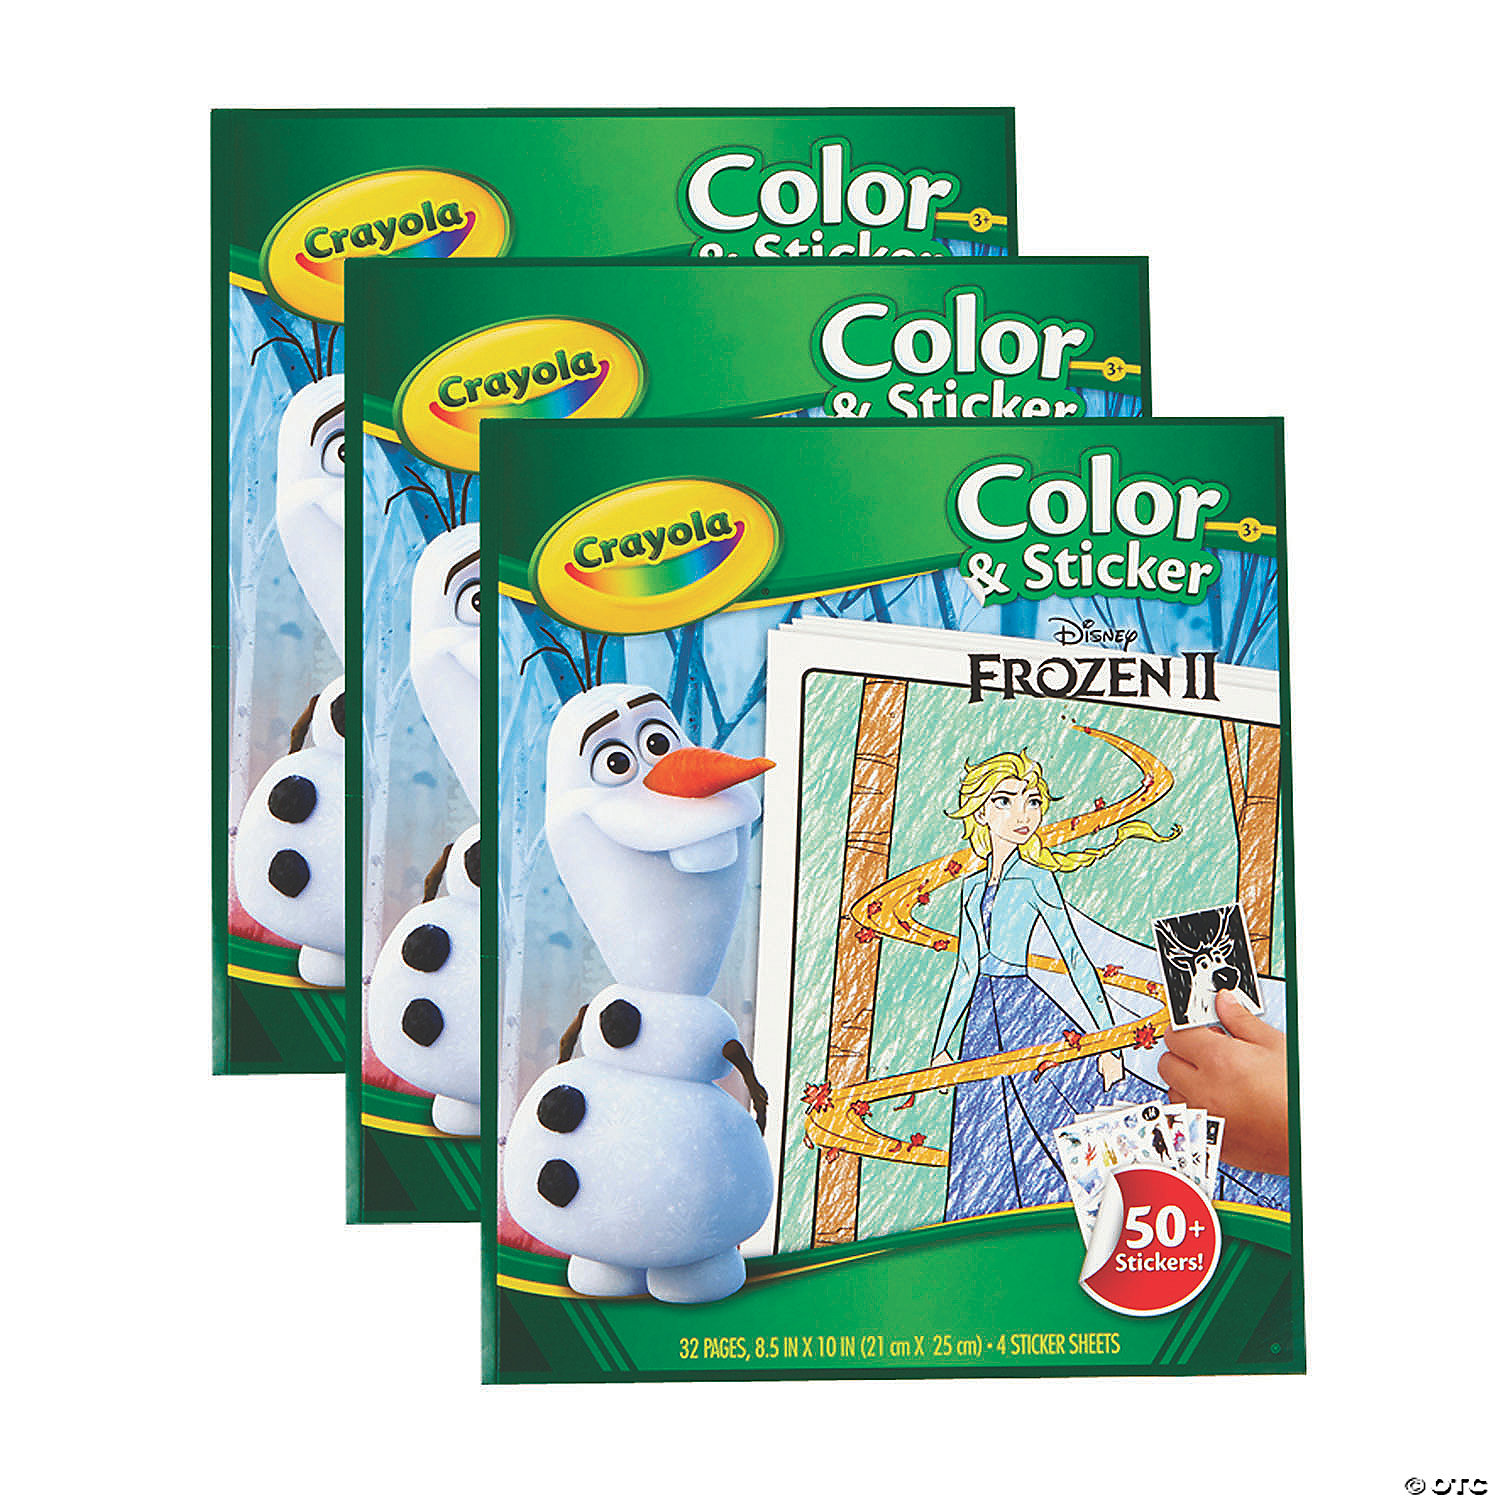 Crayola Color & Sticker Book, Frozen 223, Pack of 23